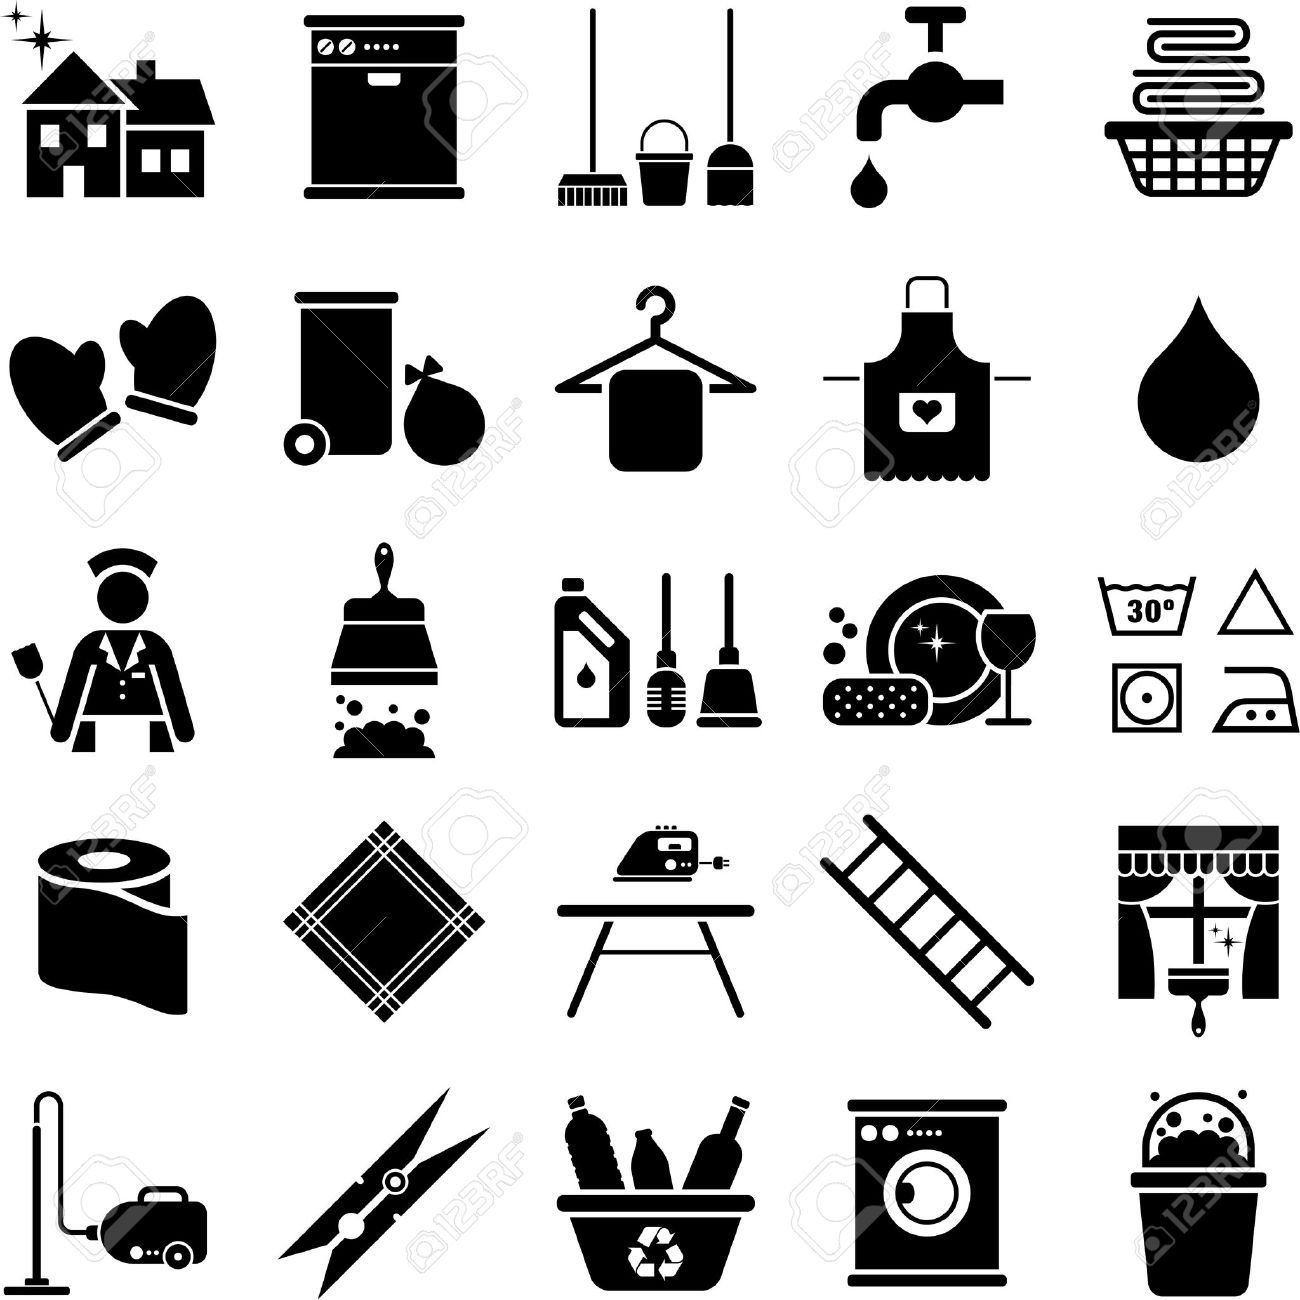 Pin By Kayla Fox On Household Silhouettes Vectors